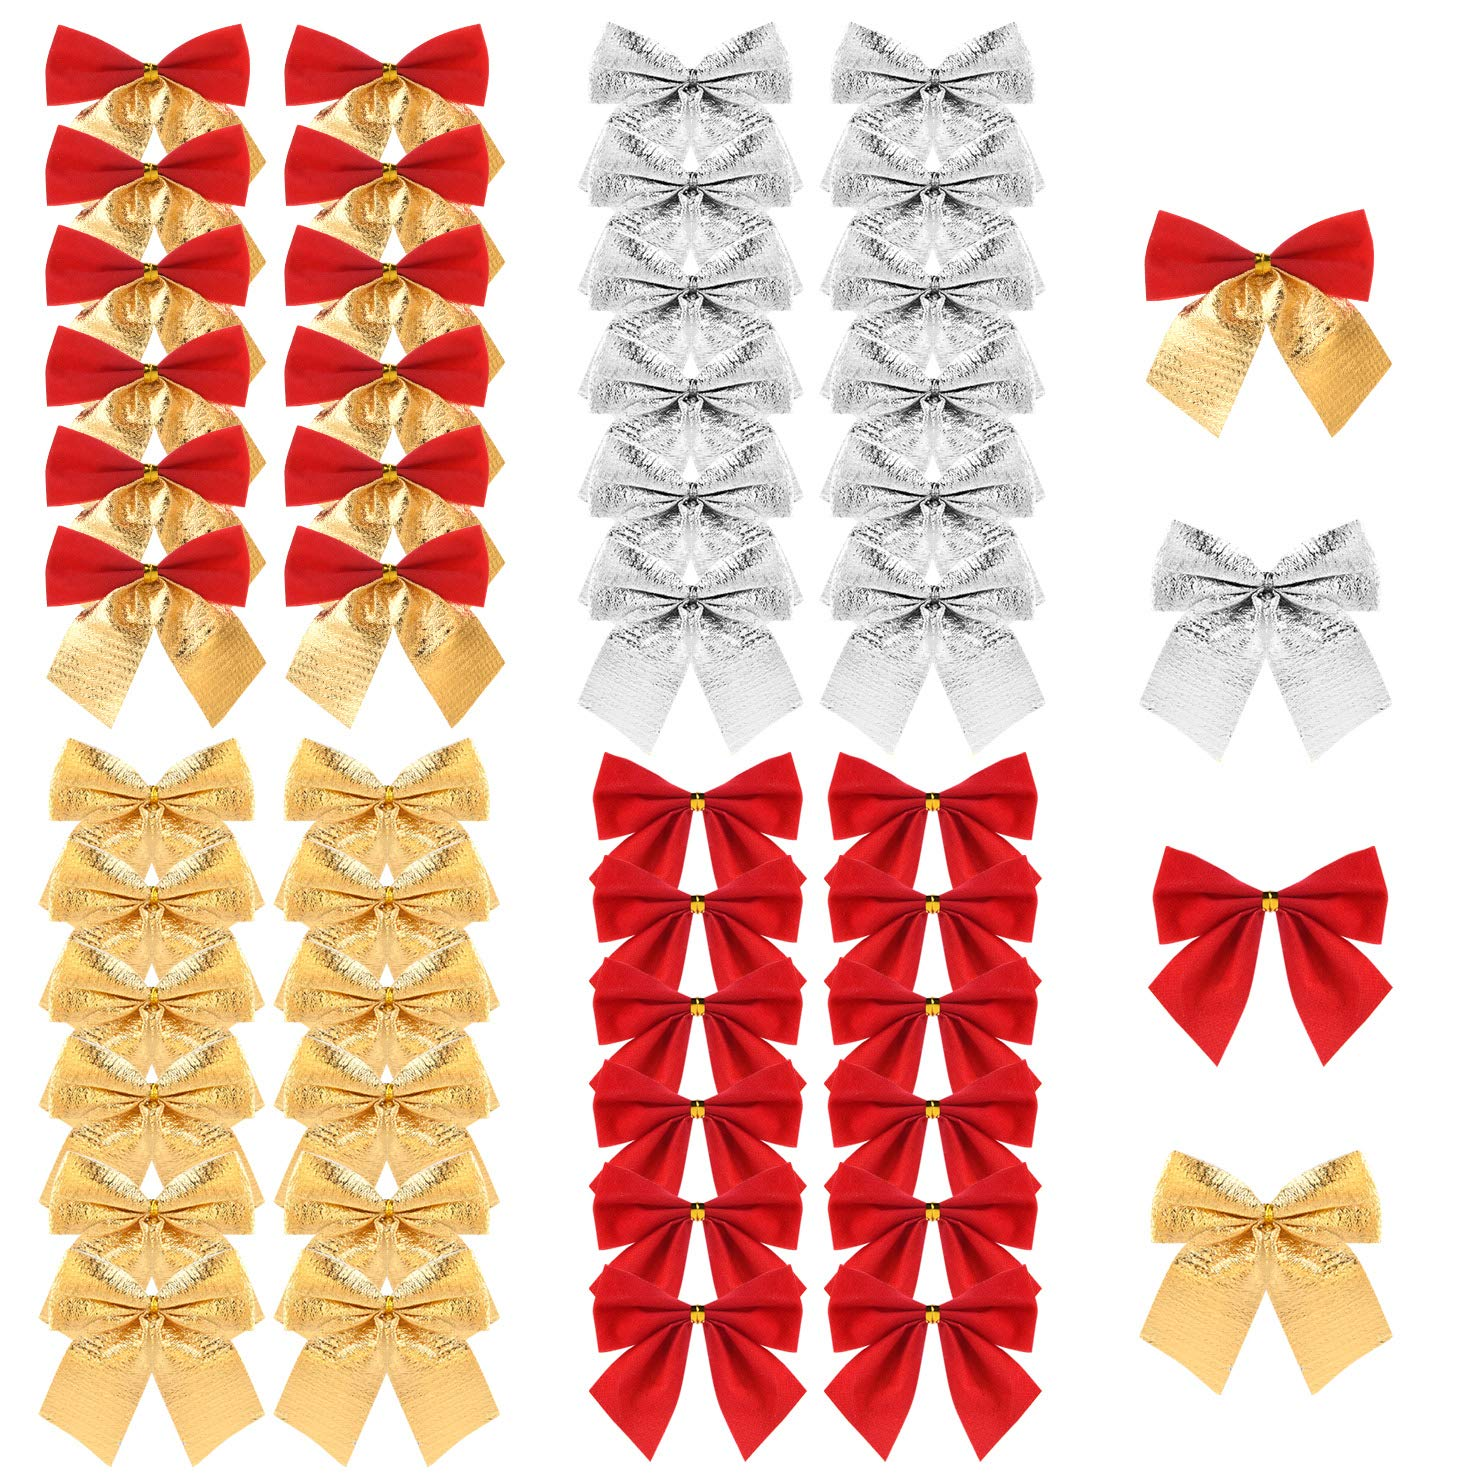 TUPARKA 48 Pieces Christmas Ribbon Bows Ornaments Xmas Tree Bowknot Decoration Presents Wrapping Craft Supplies(4 Colours)